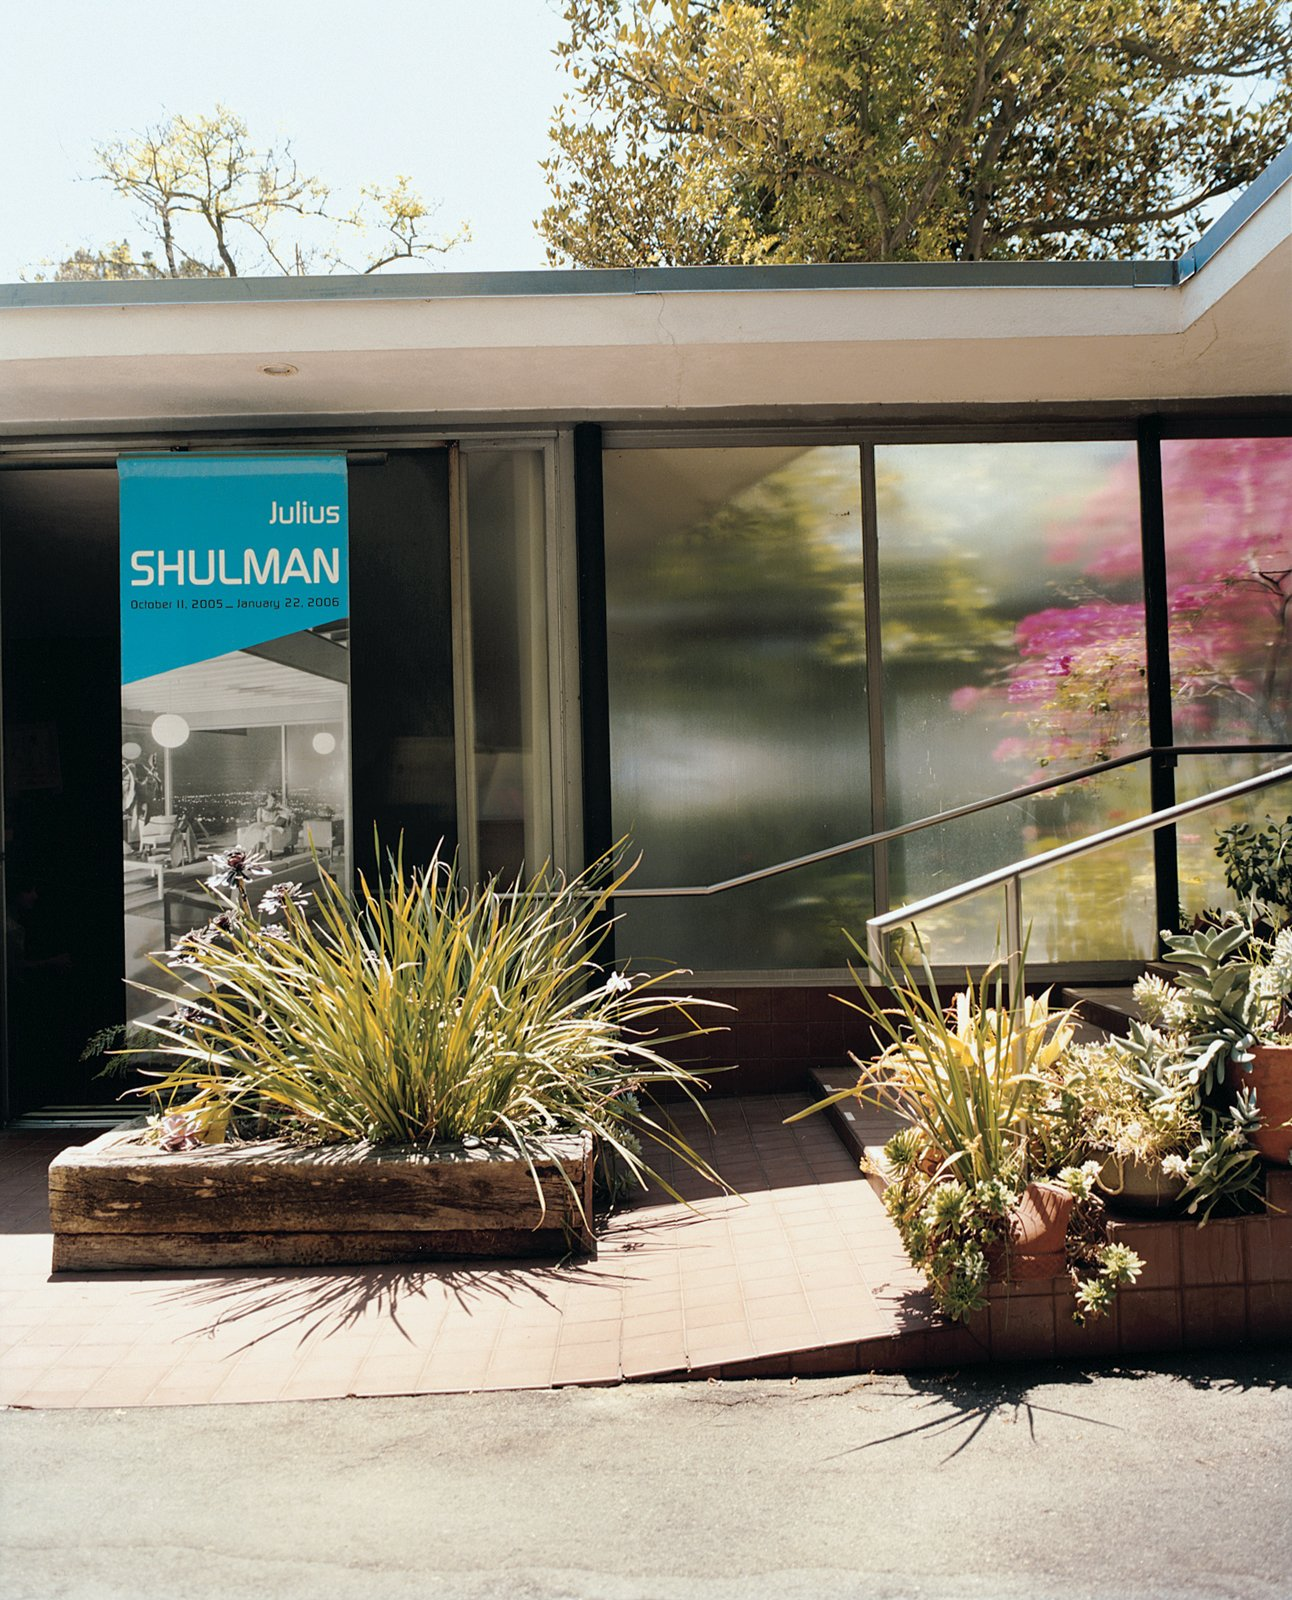 """""""I'm always identified as being the best architectural photographer in the world,"""" declares Shulman. """"I disclaim that. I say, 'One of the best.'"""" The photographer paid $2,500 for his two-acre property, and $40,000 for the Raphael Soriano–designed studio and house, into which he moved in 1950. """"All in cash,"""" Shulman says. """"My mother taught us, 'Never have a mortgage.'"""" Over the ensuing decades, he says, """"I planted hundreds of trees and shrubs, to emulate how I lived as a child [on a farm in Connecticut].""""  Photo 2 of 4 in True Hollywood Story"""